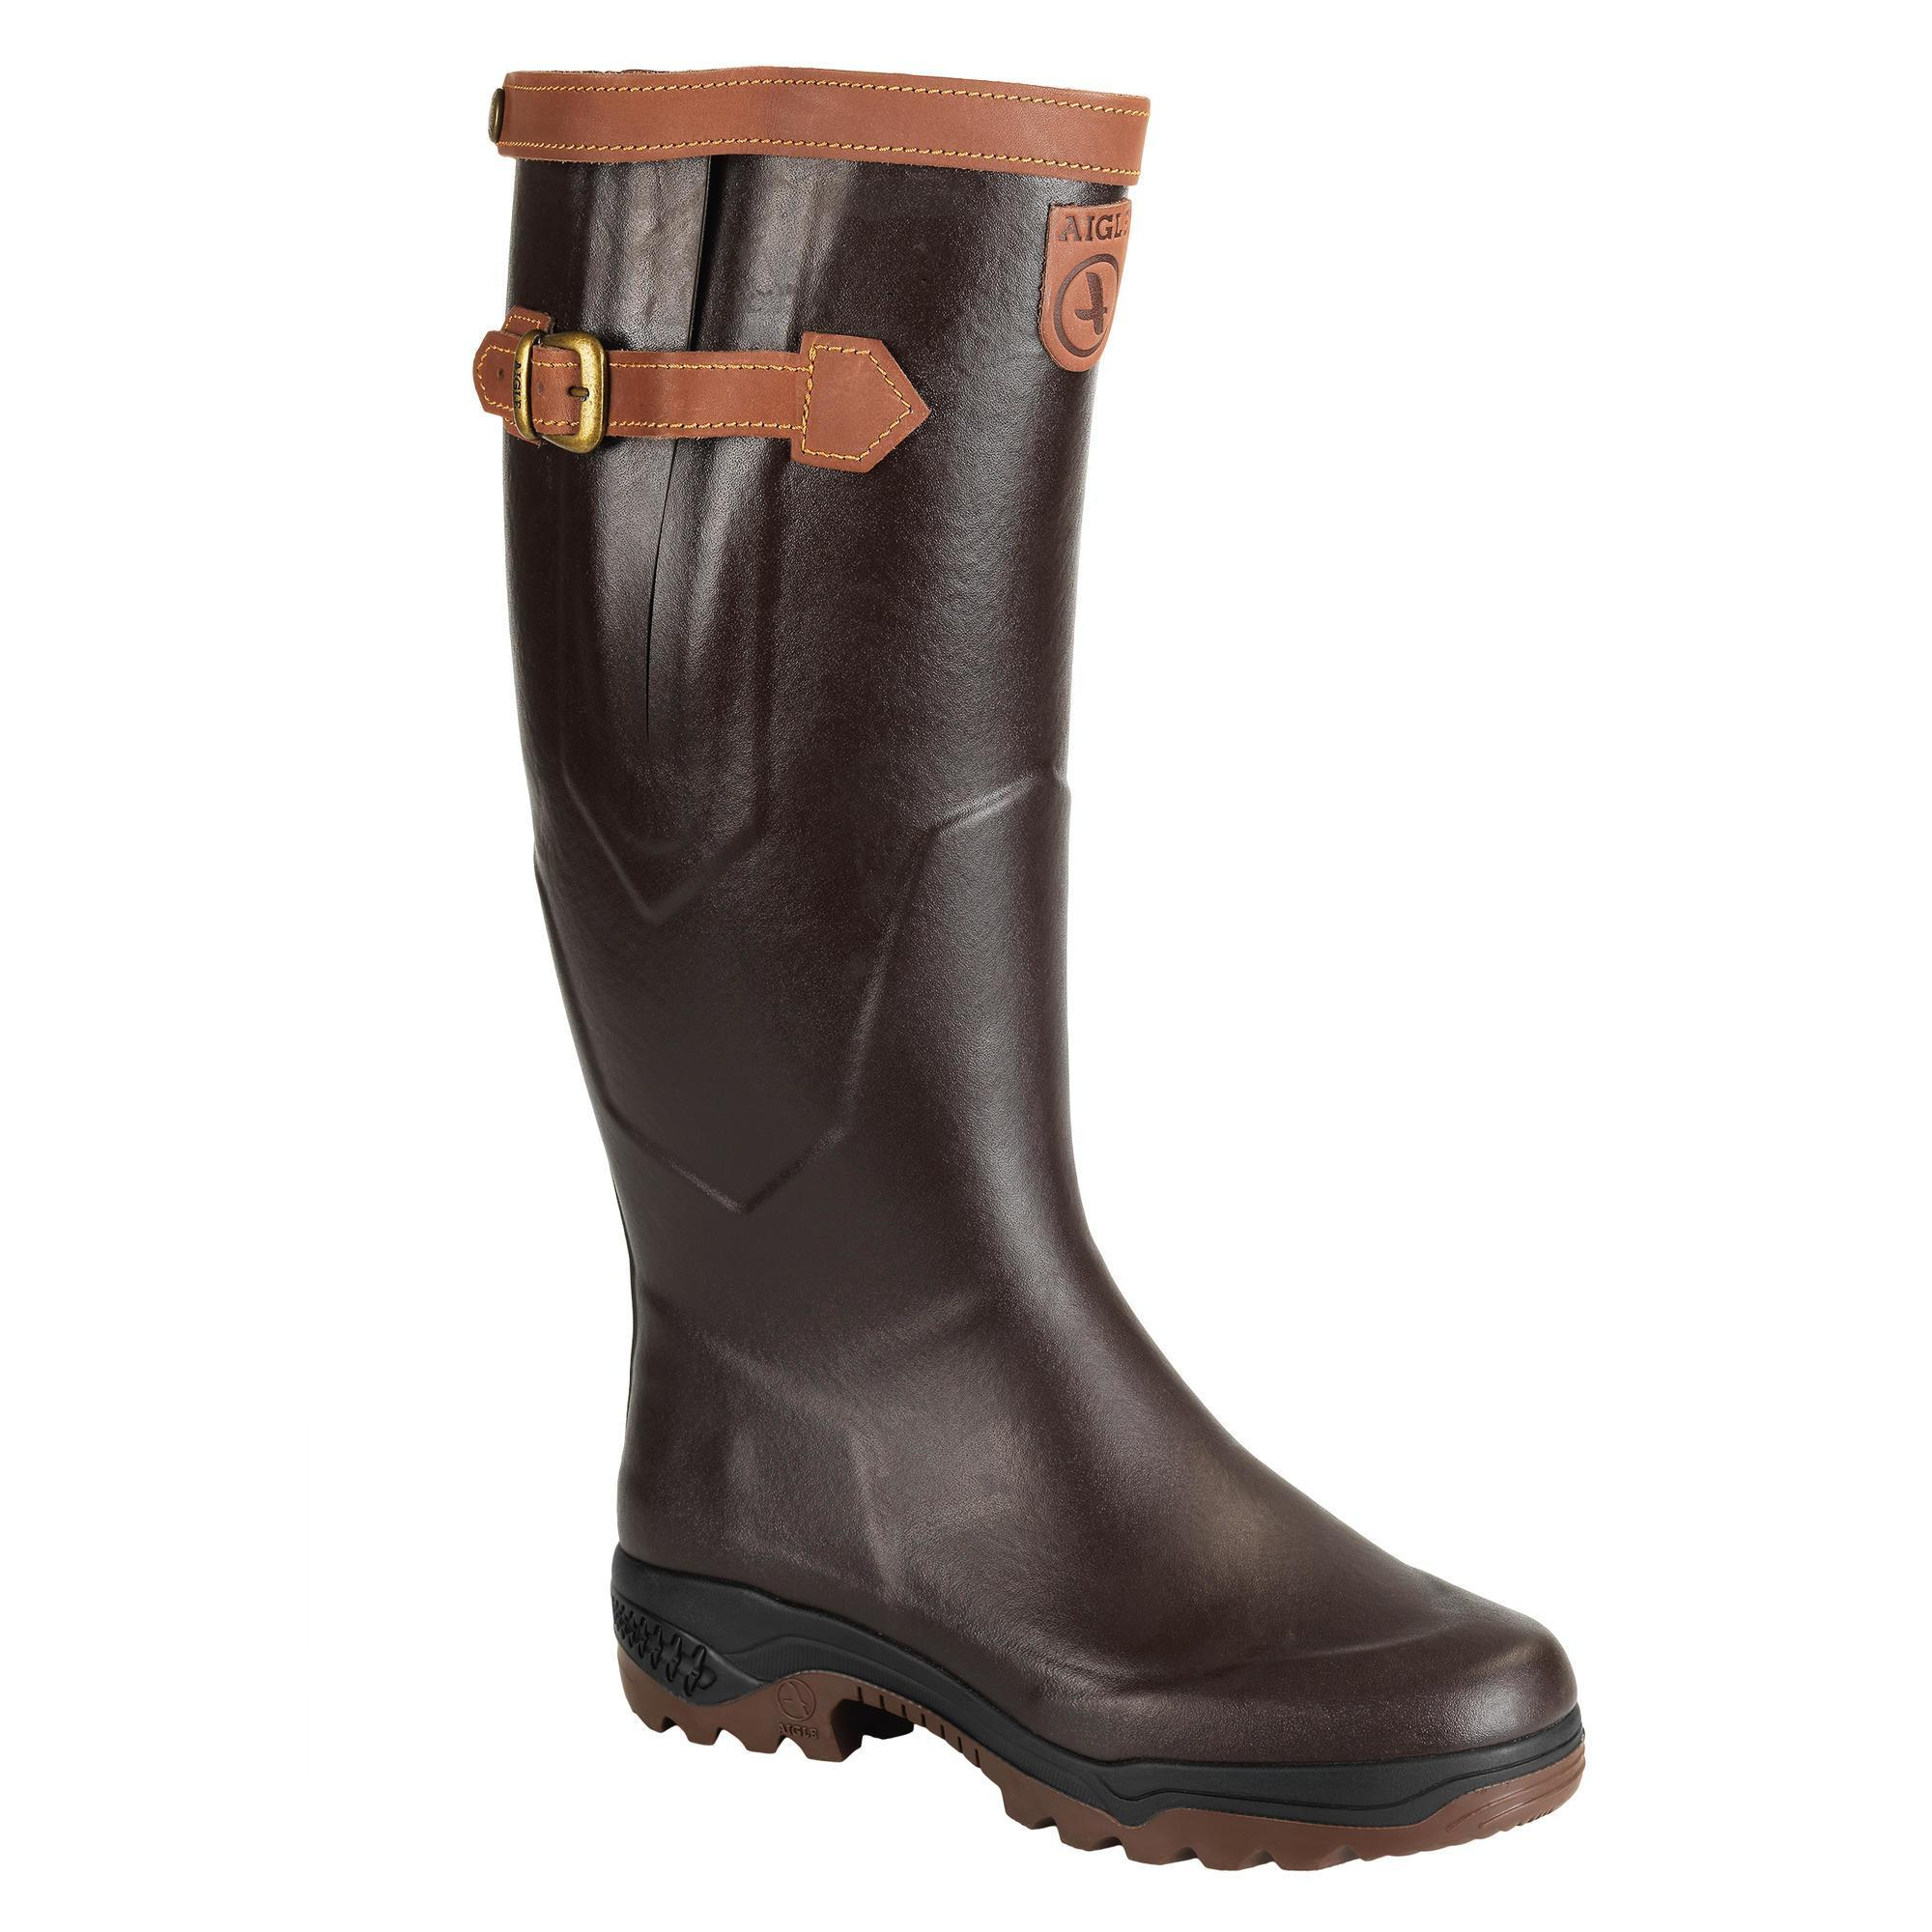 taille 40 5dd81 acfee Bottes, botillons de chasse | DECATHLON